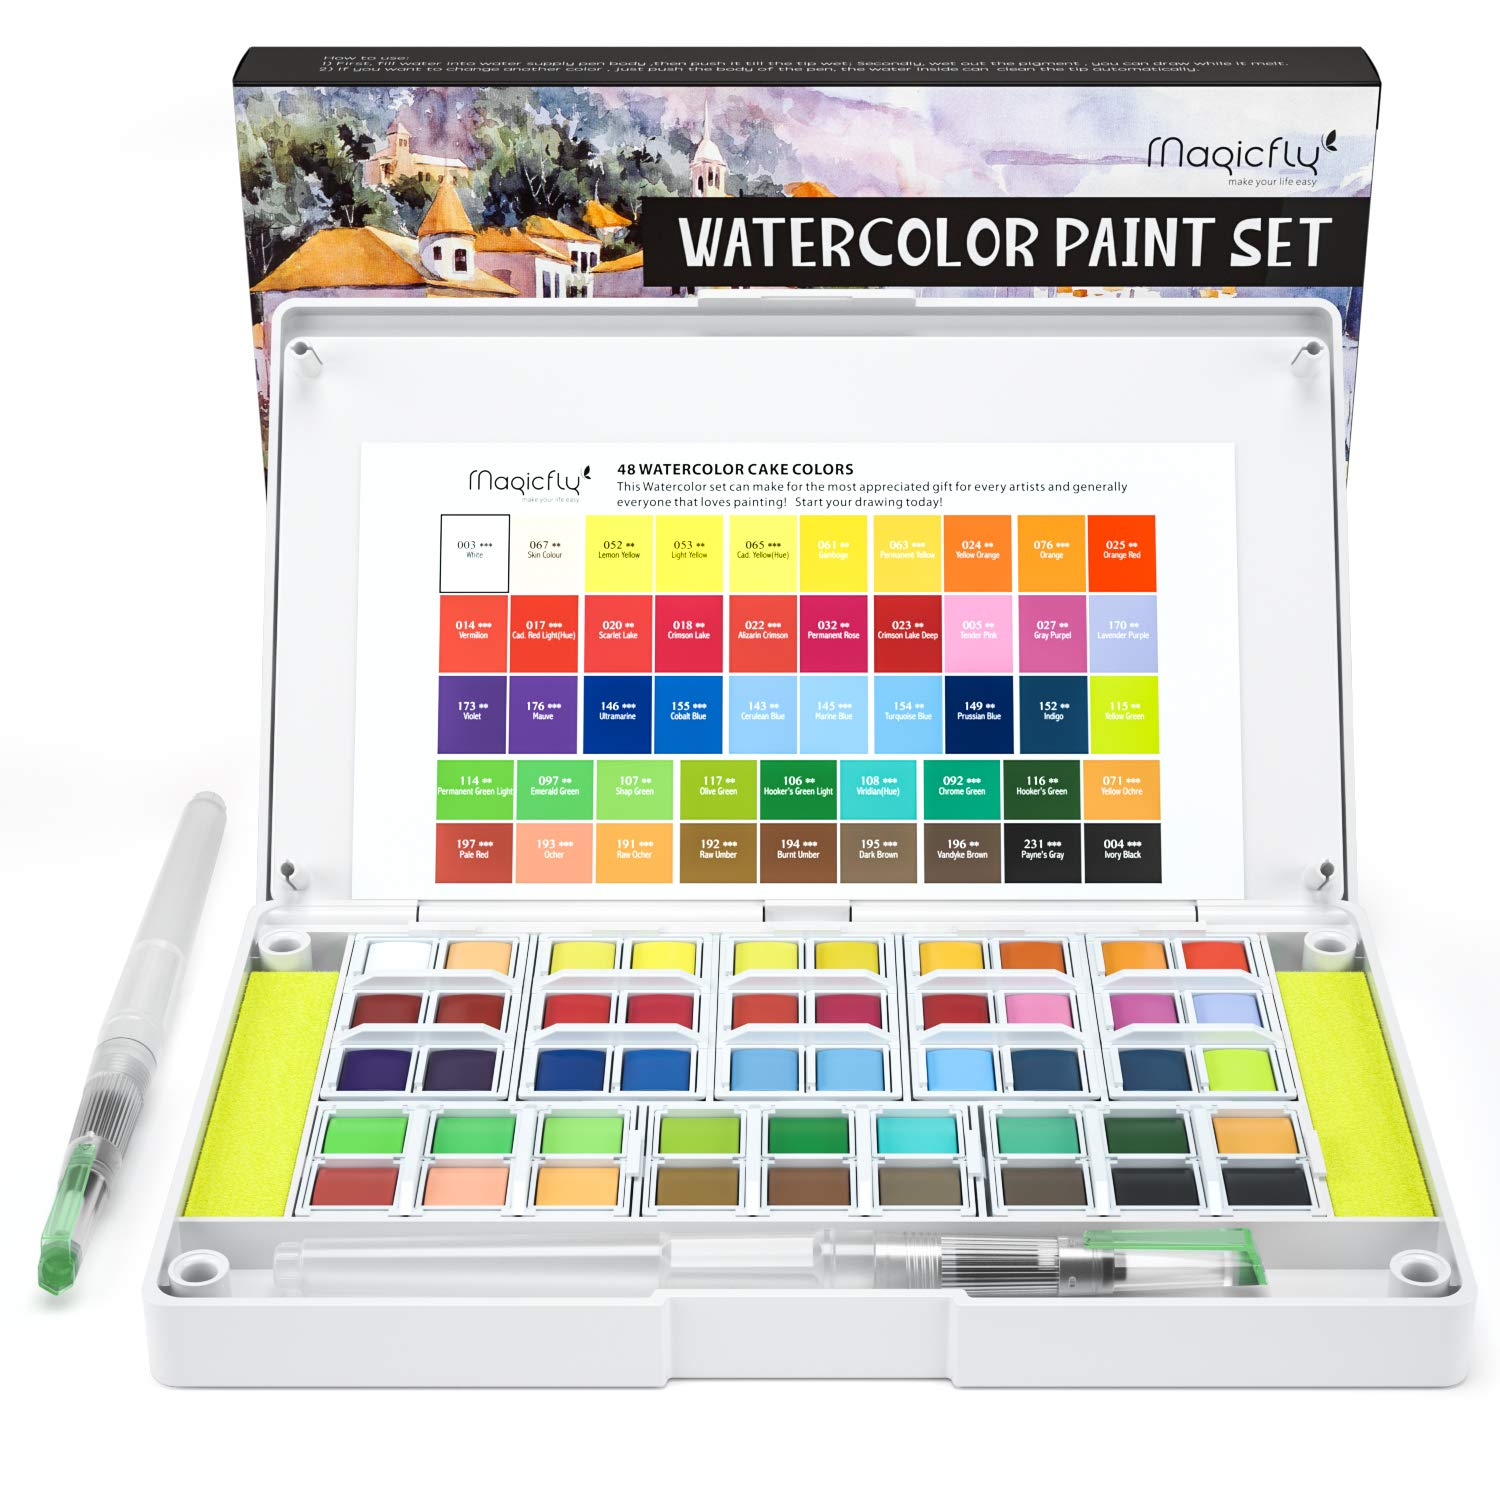 Water Color Set, Magicfly 48 Colors Watercolor Field Sketch Set with 2 Refillable Water Coloring Pens, Detachable Palette Easy to Blend Colors Travel Water Color Pan kit